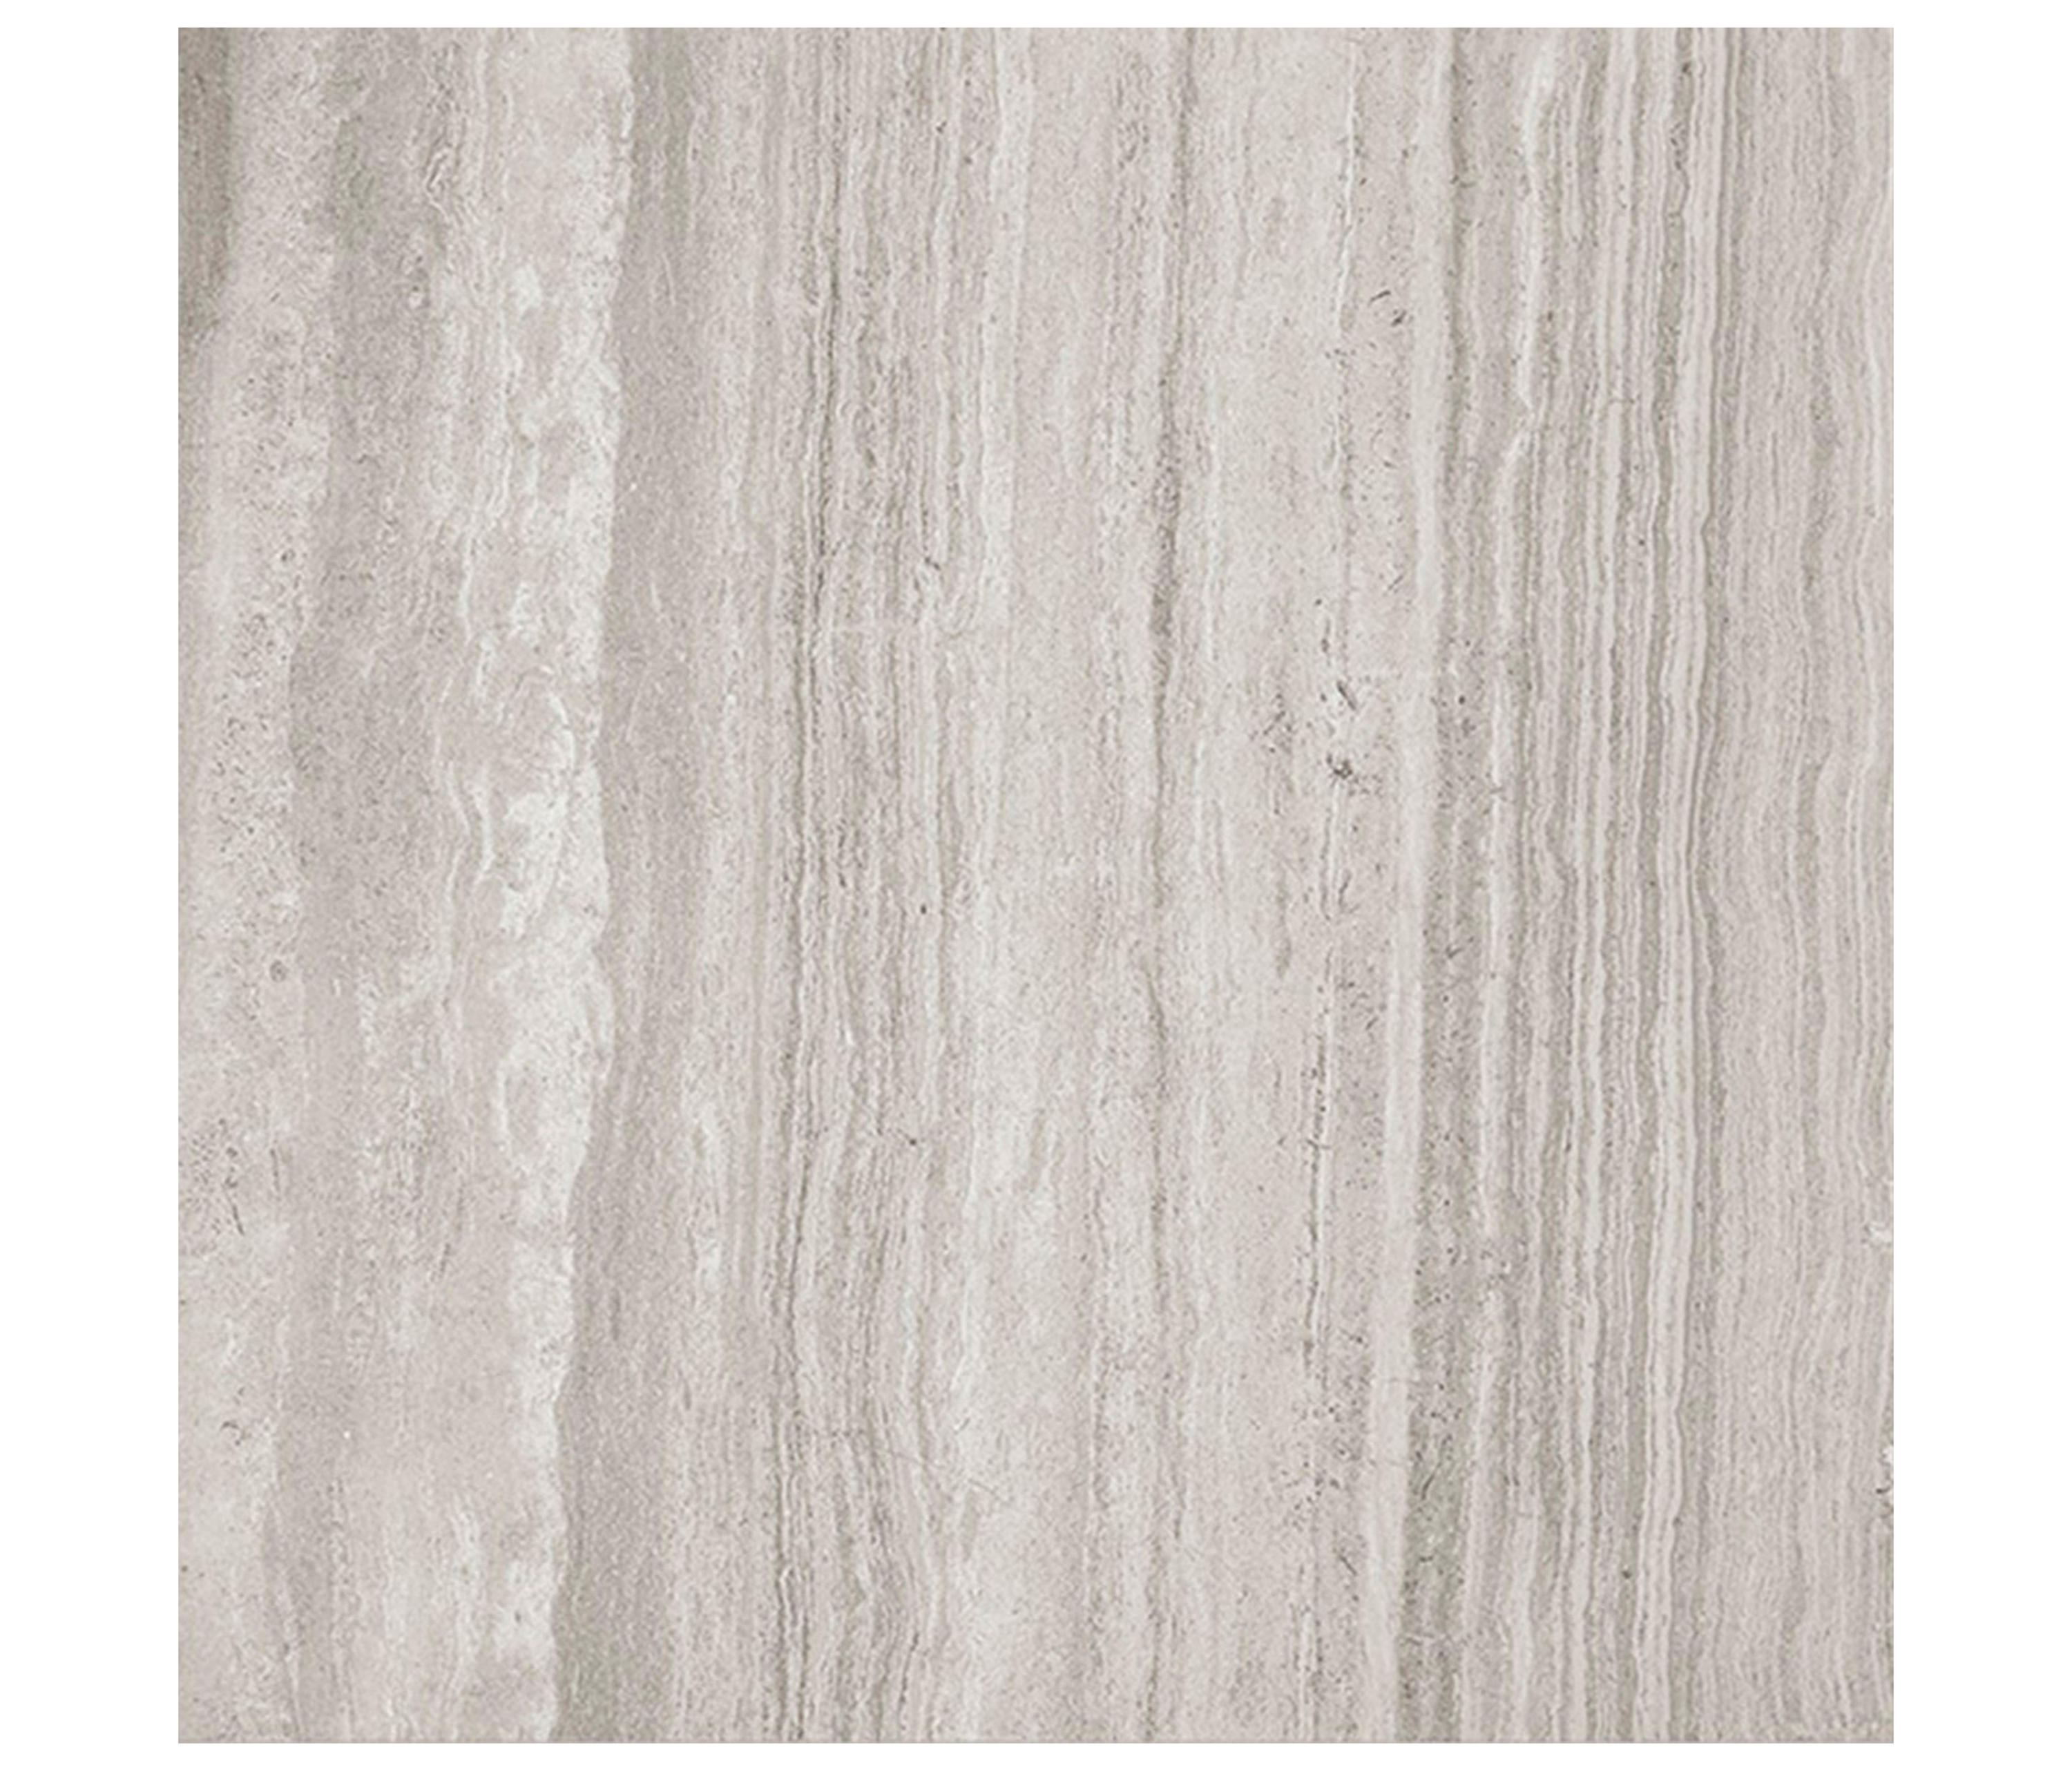 Marstood marble 02 silver travertine 60x60 polished for Carrelage 02